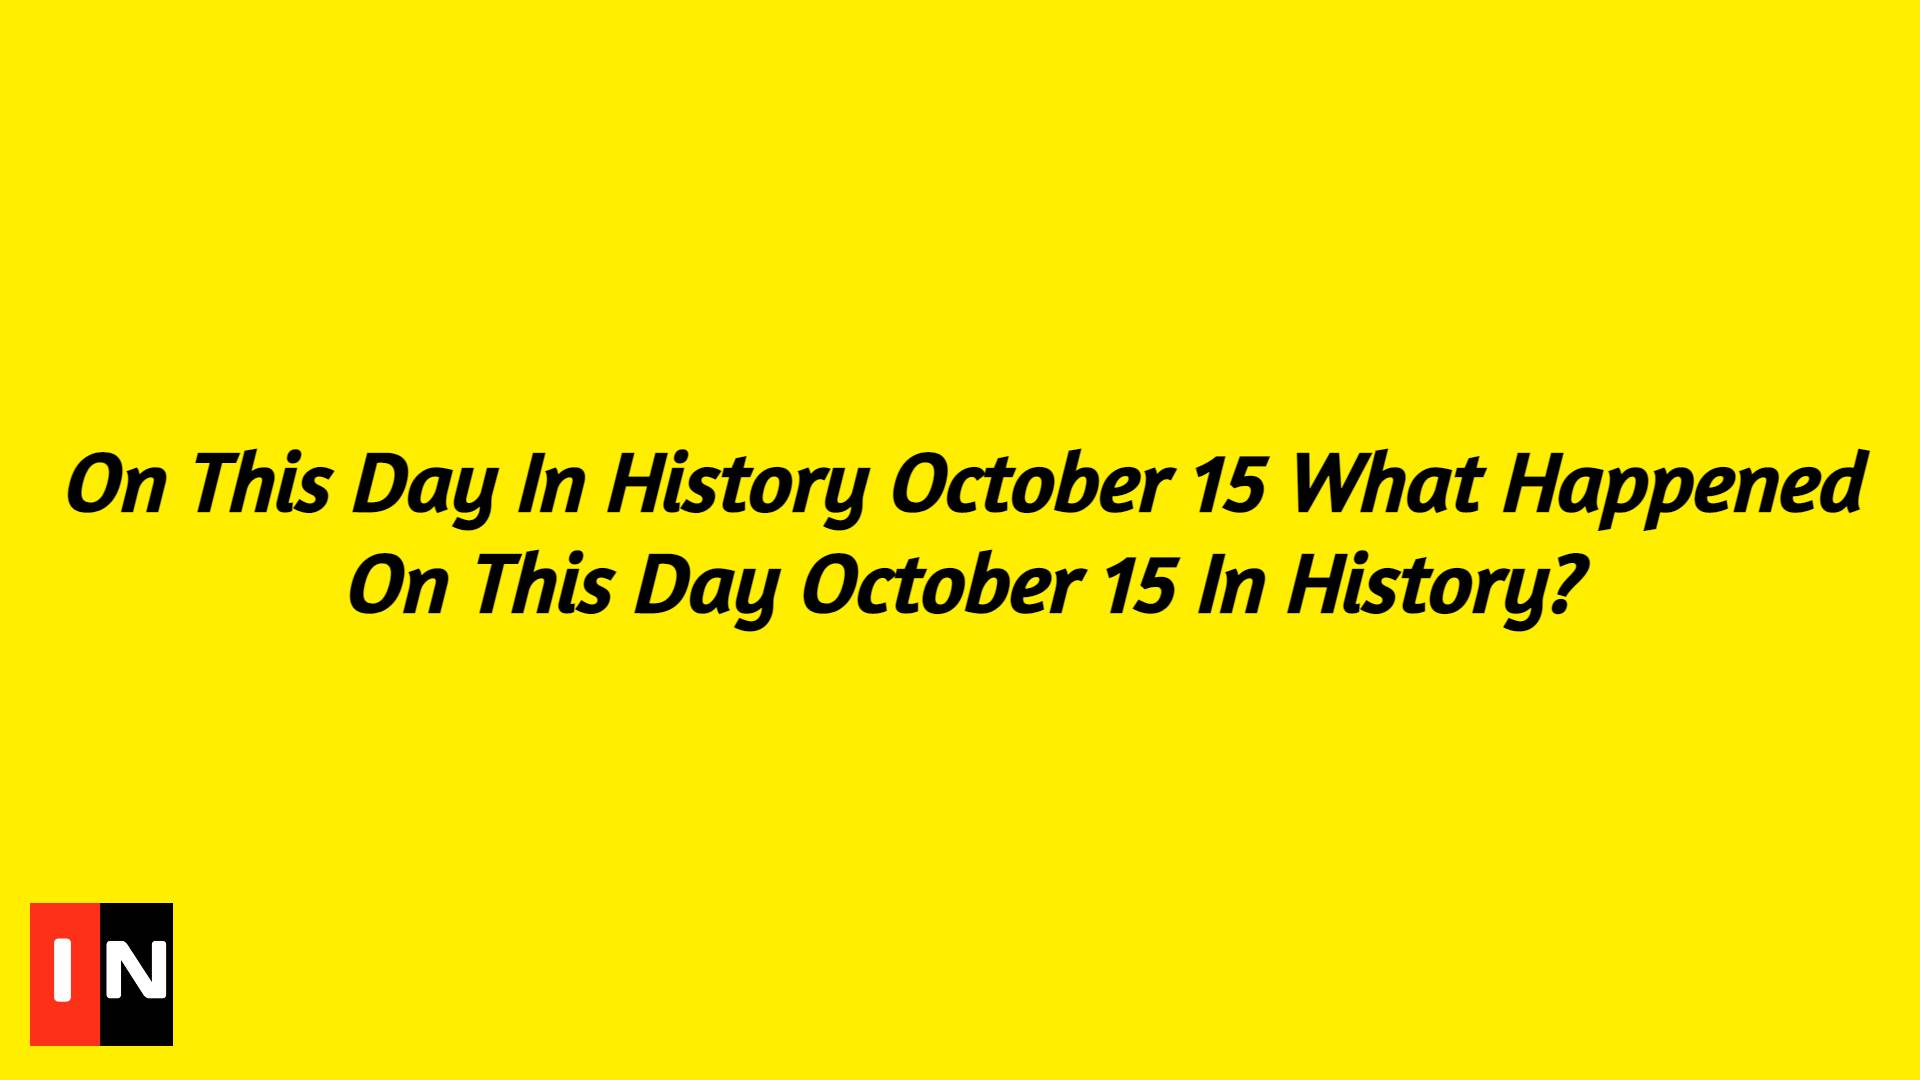 On This Day In History October 15 What Happened On This Day October 15 In History?